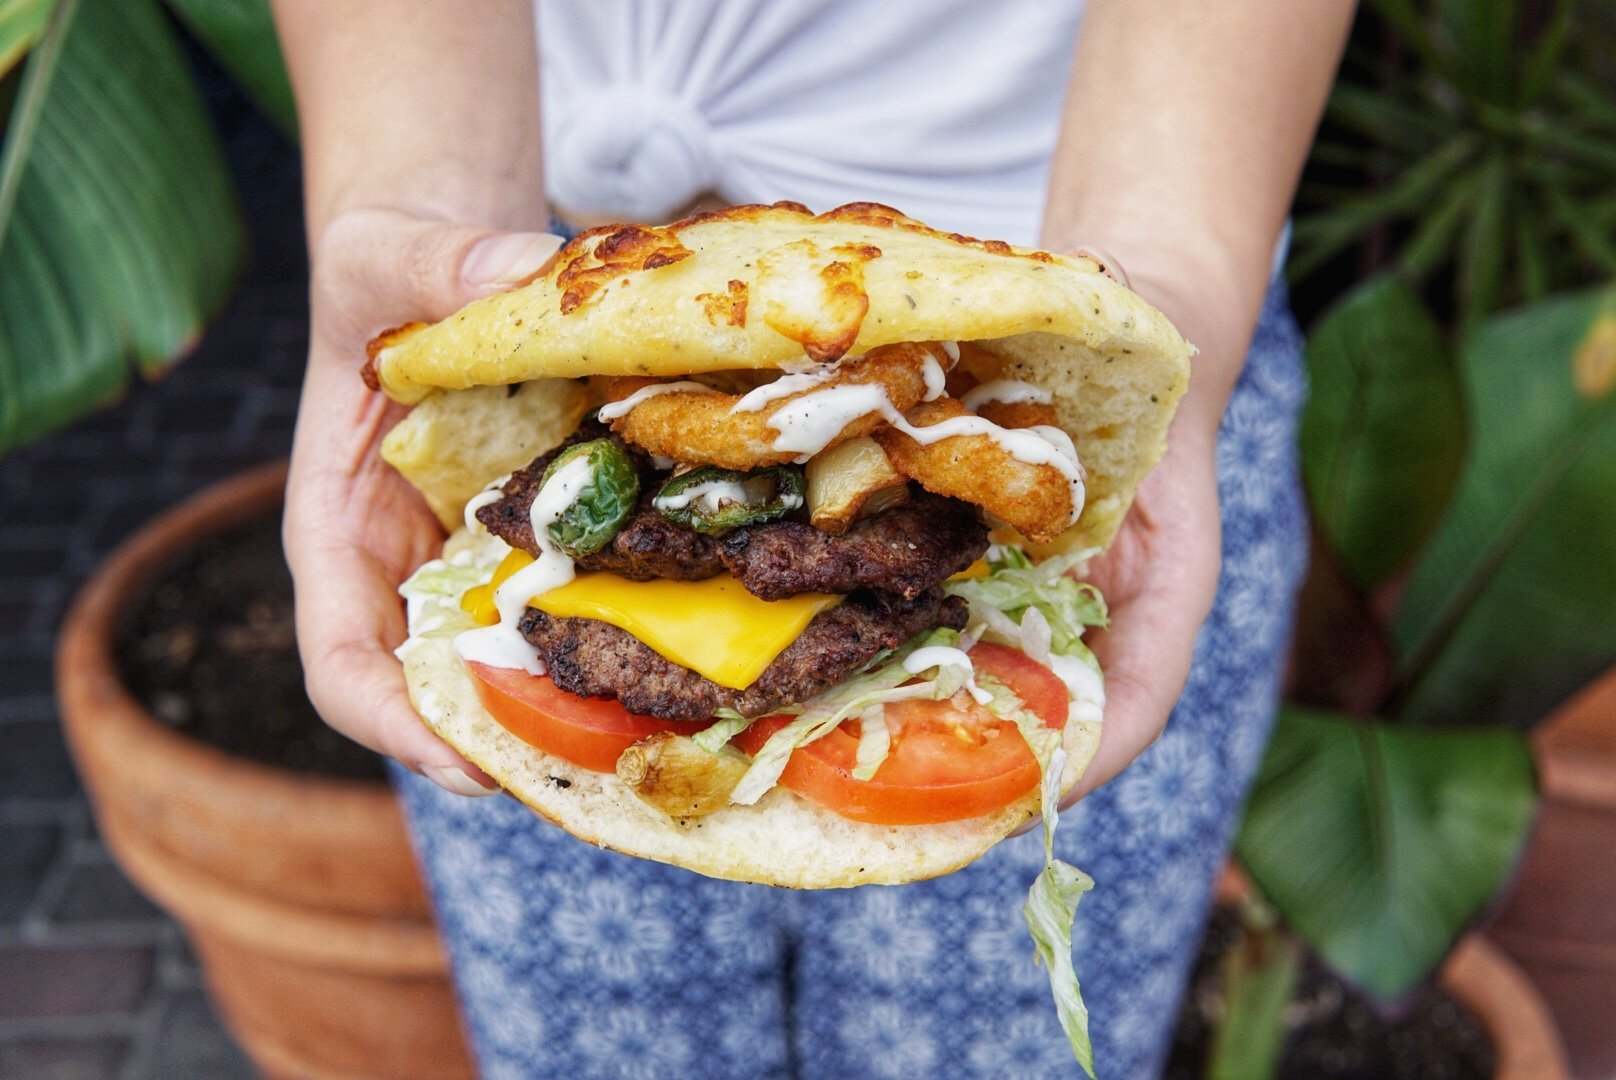 Rockfire Grill Puts A Special Twist On Their Burgers and Its Life Changing